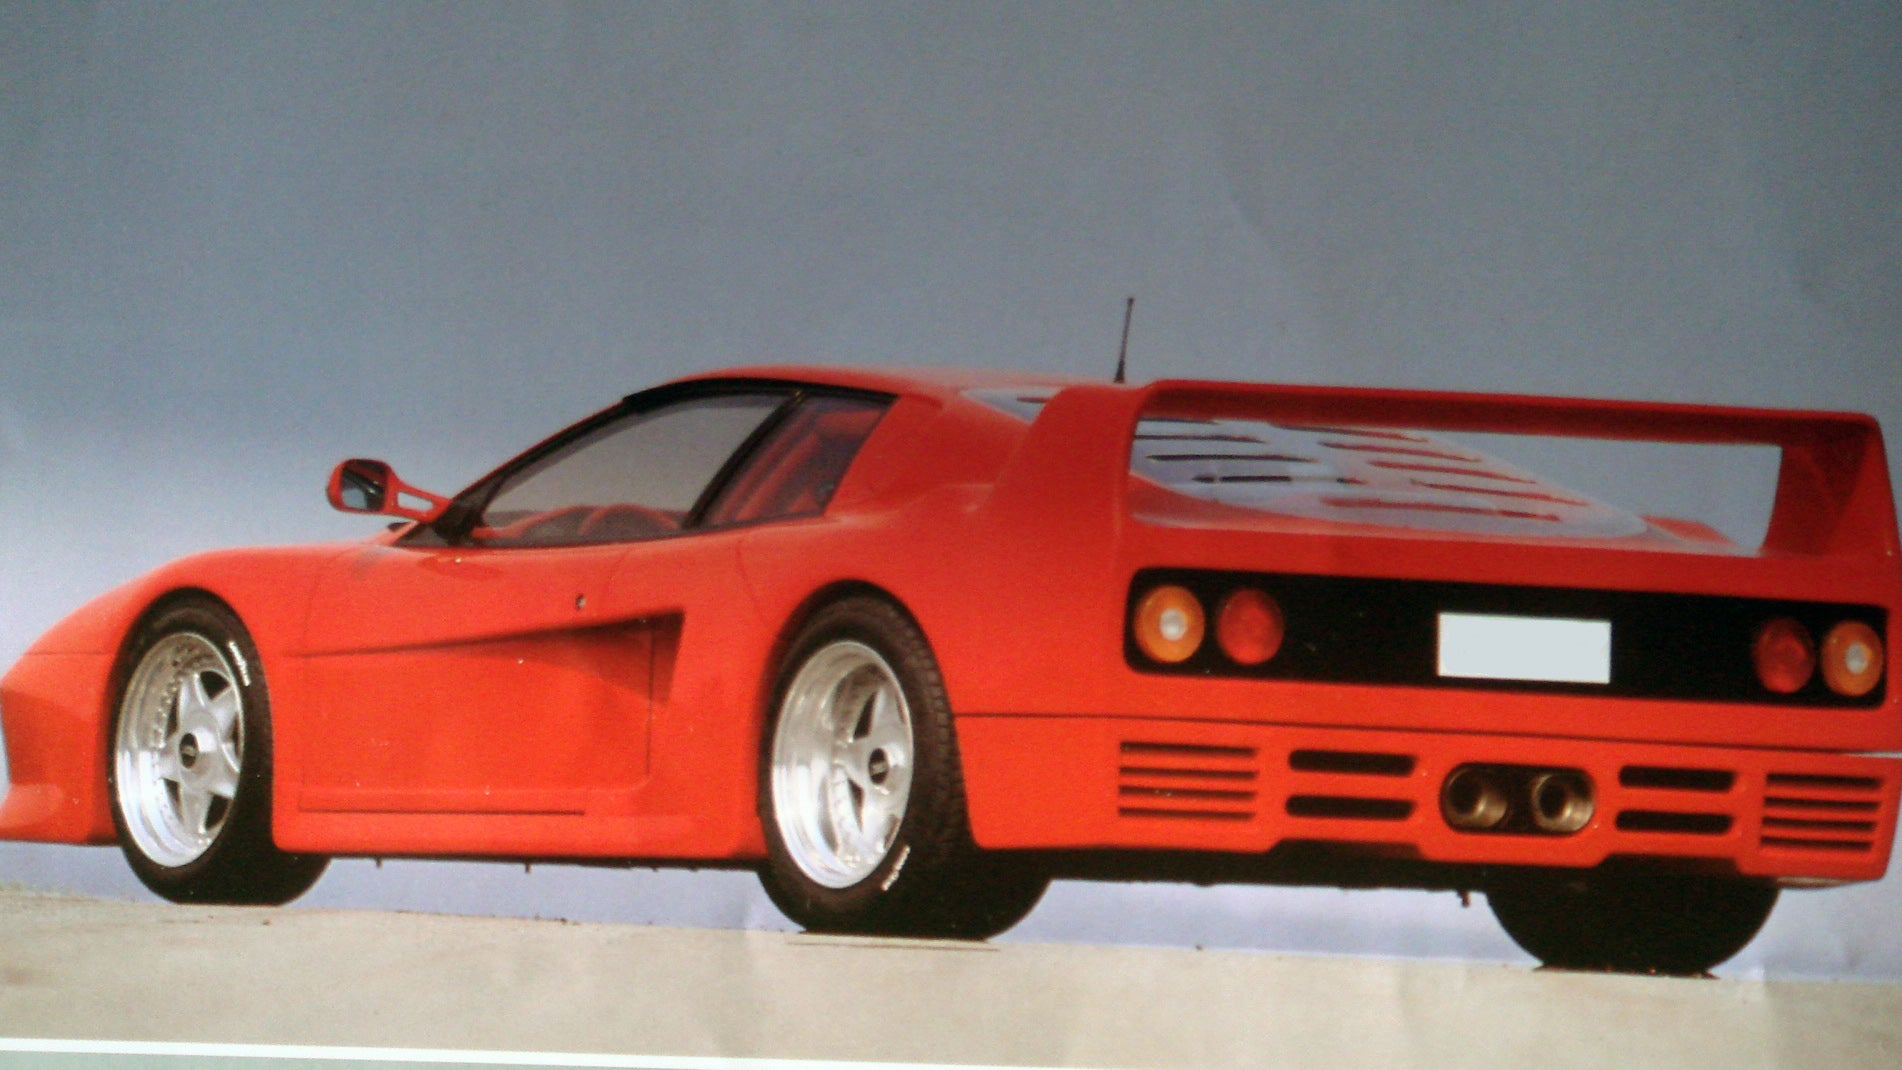 This Ferrari Is Not An F40